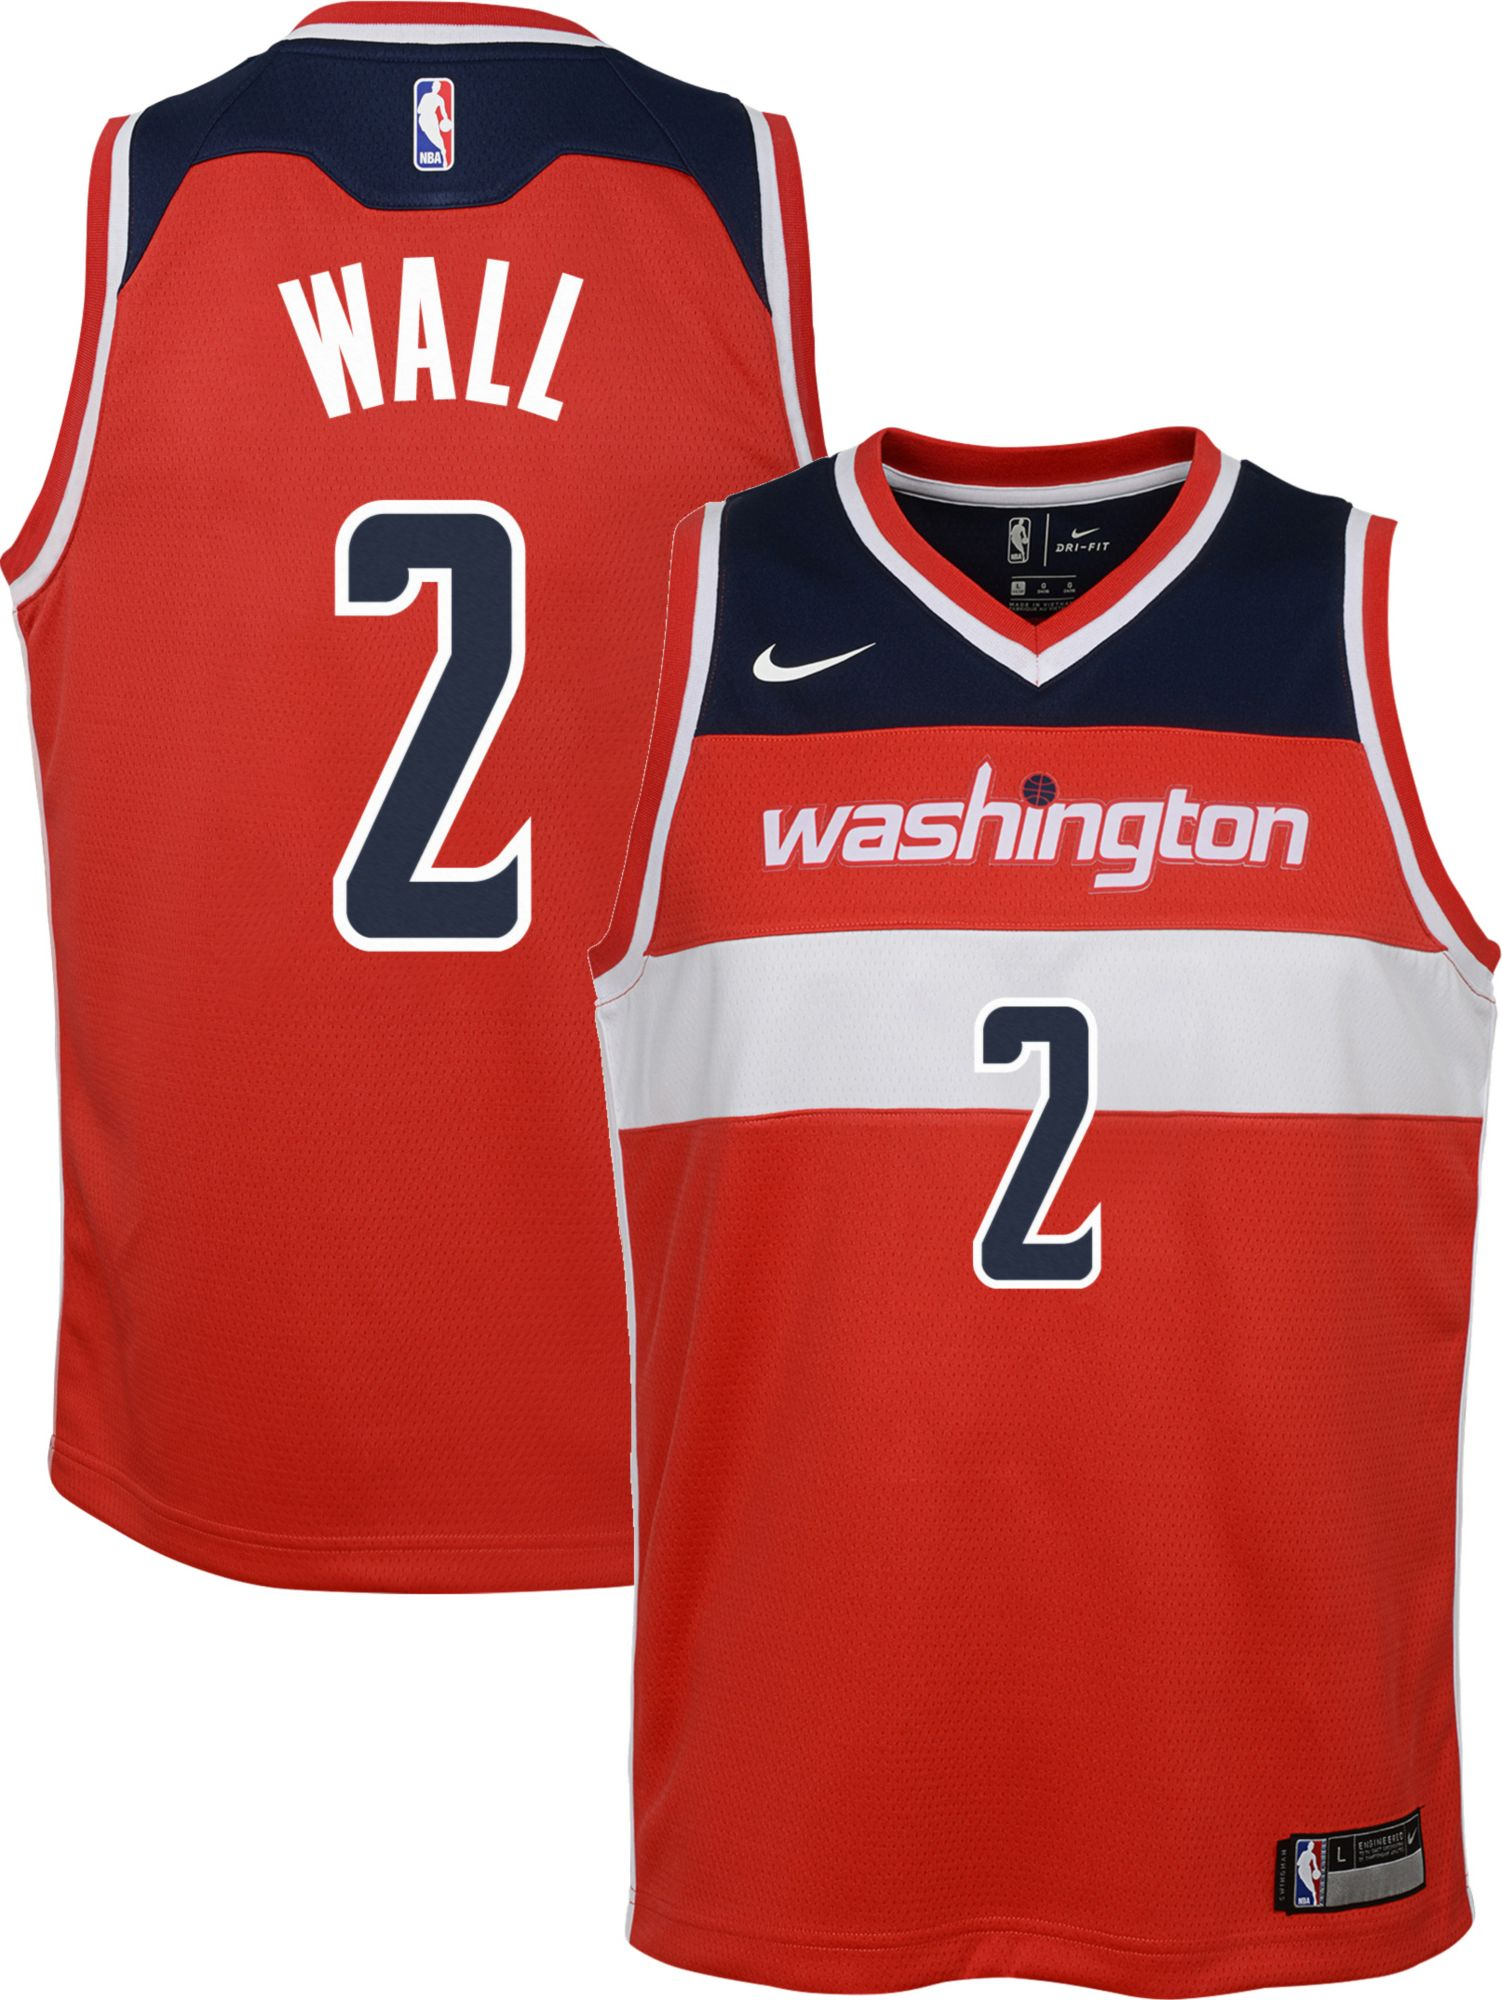 washington jersey